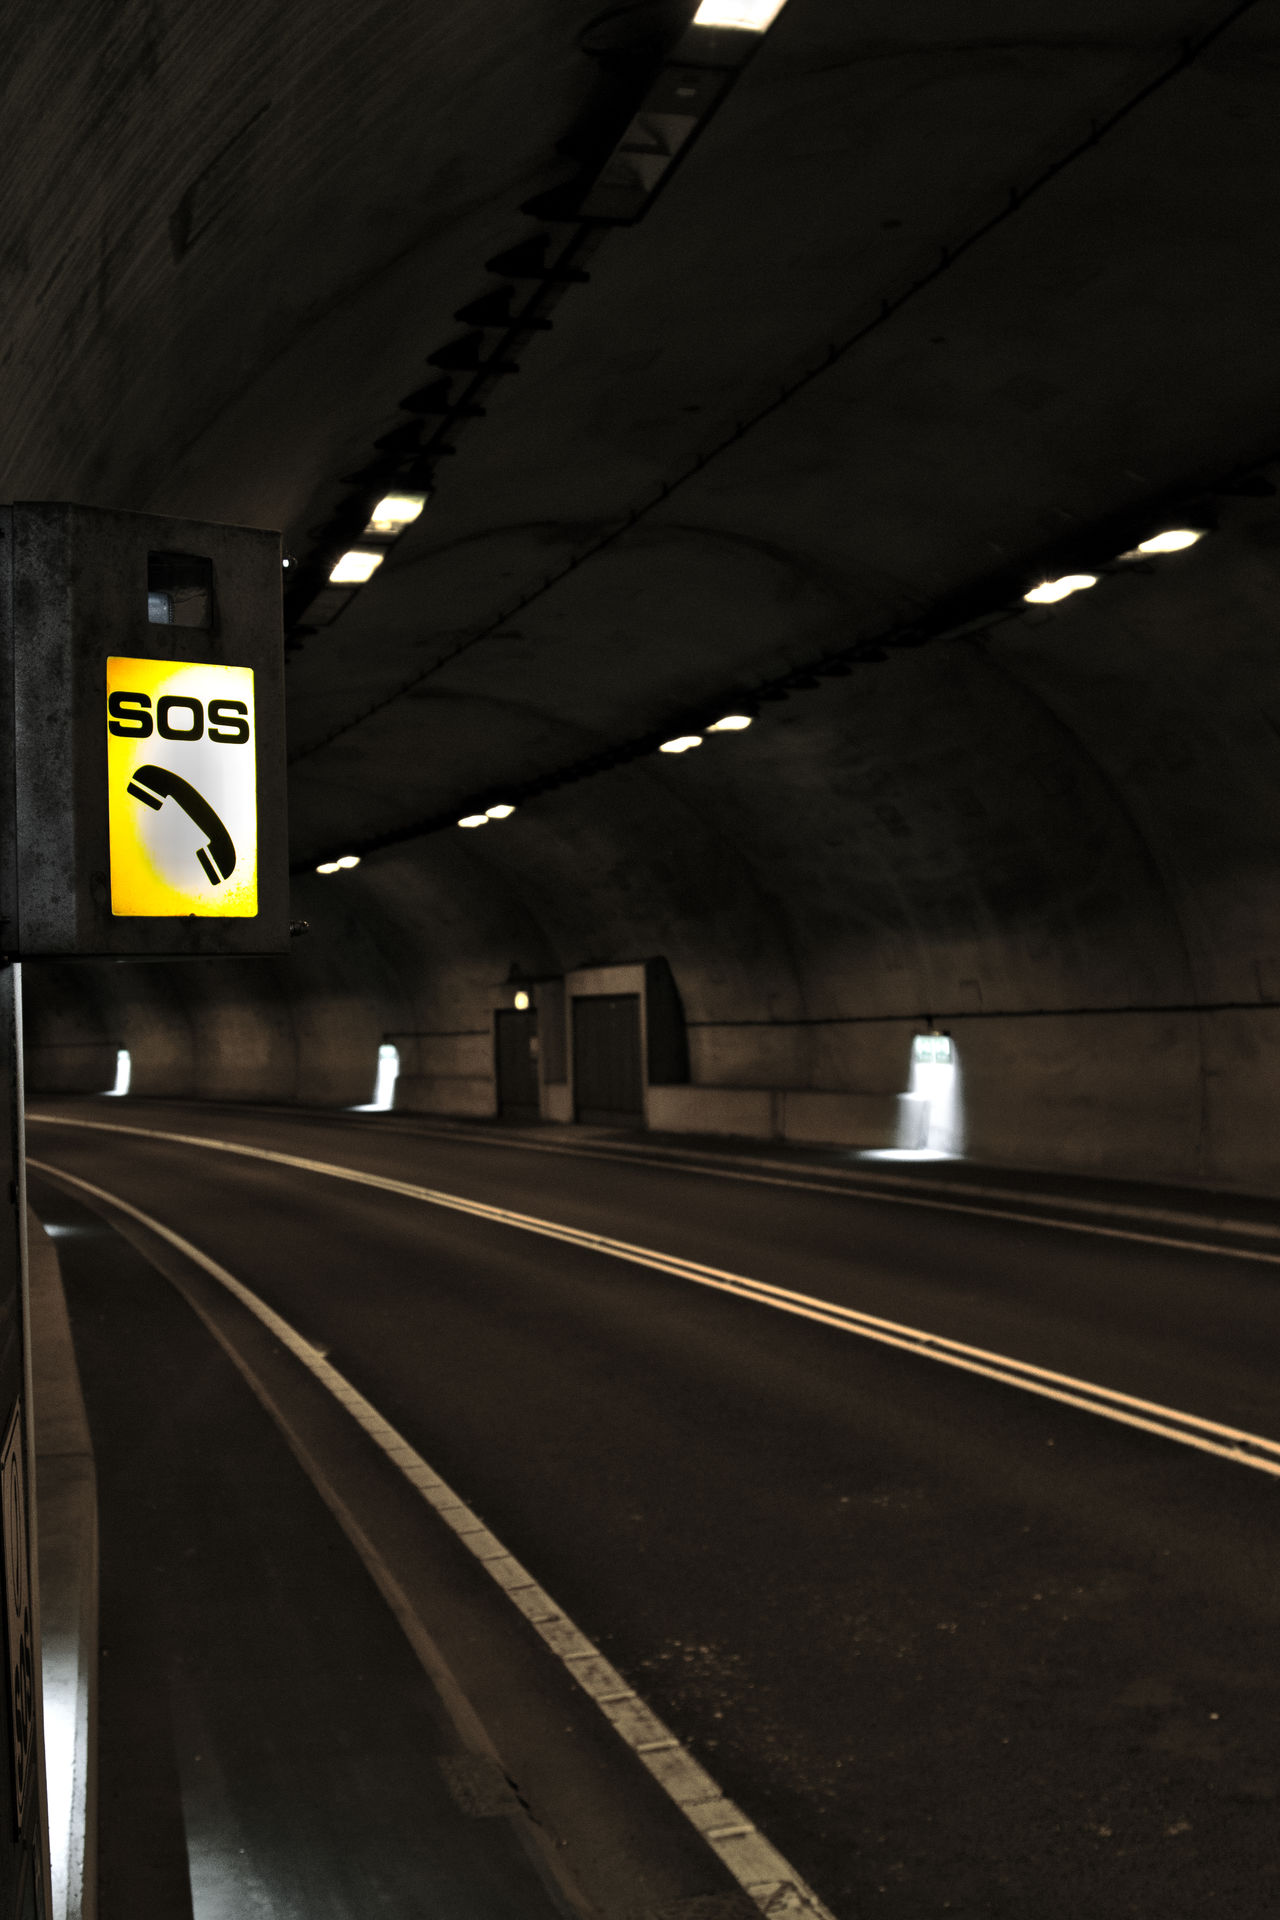 tunnel SOS Concrete Darkness And Beauty Darkness And Light Guidance Illuminated Inside Things Journey Leading Lines Light In The Darkness Man Made Structure Public Transportation Rail Transportation Railroad Station Railroad Station Platform Railroad Track Road Road Sign Signs Sos The Way Forward Transportation Travel Travel Destinations Tunnel Tunnel Vision